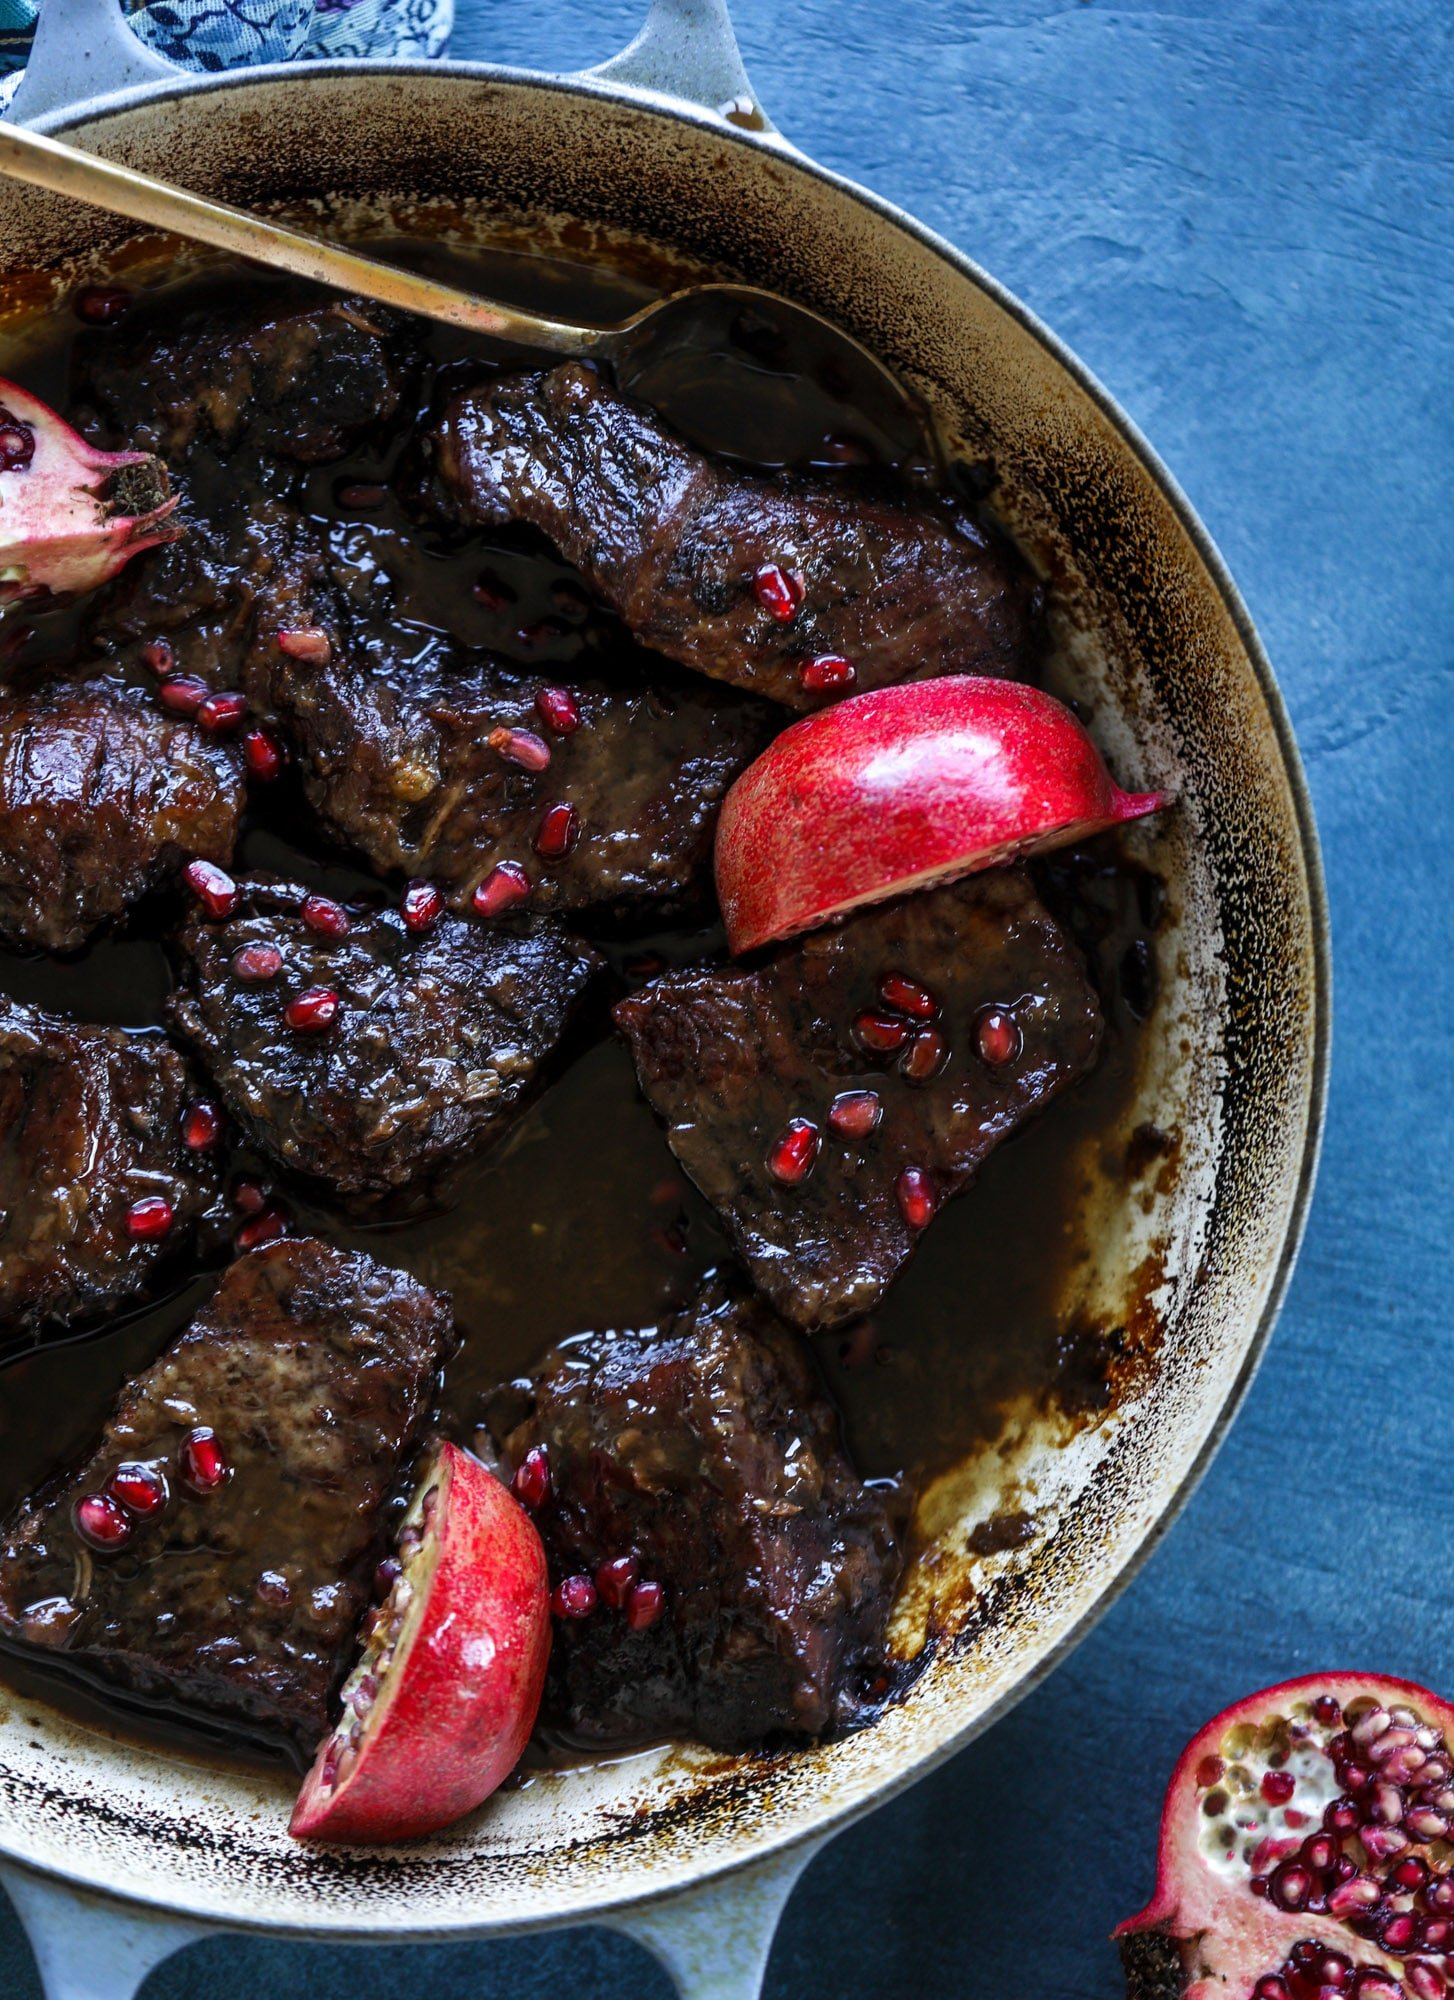 These pomegranate braised short ribs are an incredible take on comfort food! Pomegranate juice and molasses are the base of the recipe and after braising, you're left with tender, juicy and flavorful beef that is amazing served with polenta, potatoes or even in tacos. I howsweeteats.com #braised #shortribs